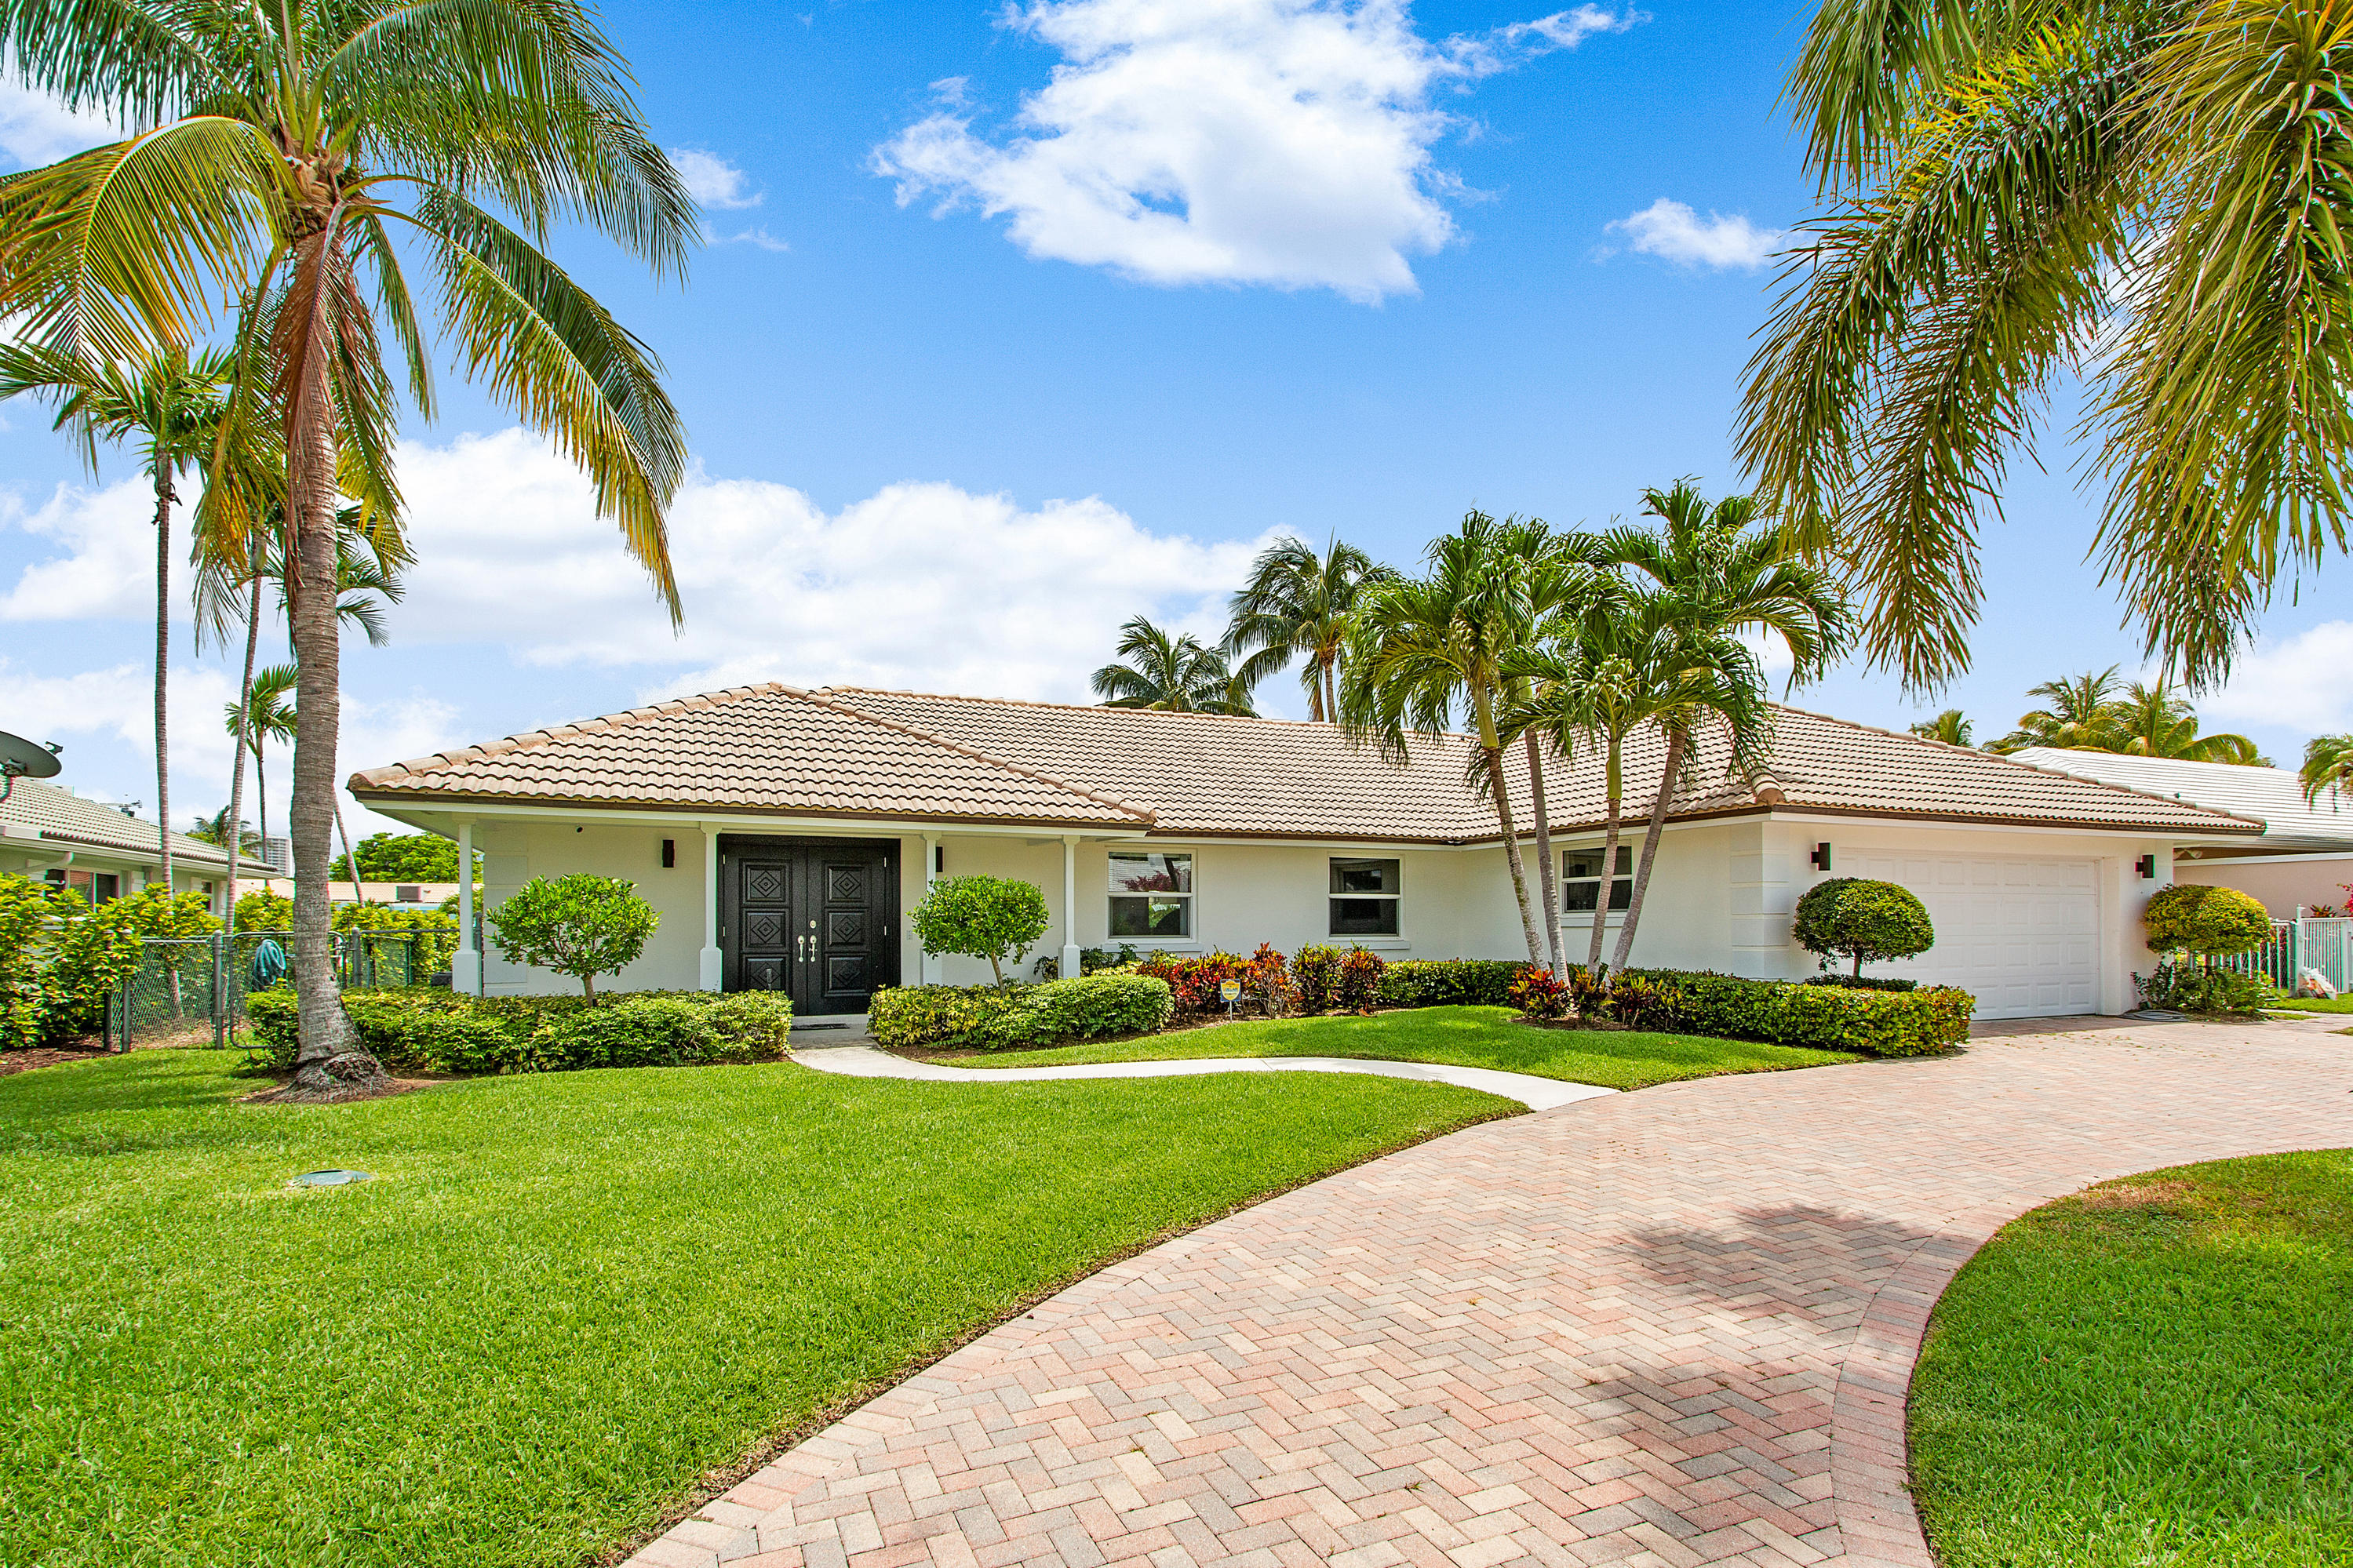 New Home for sale at 1171 Gulfstream Way in Singer Island